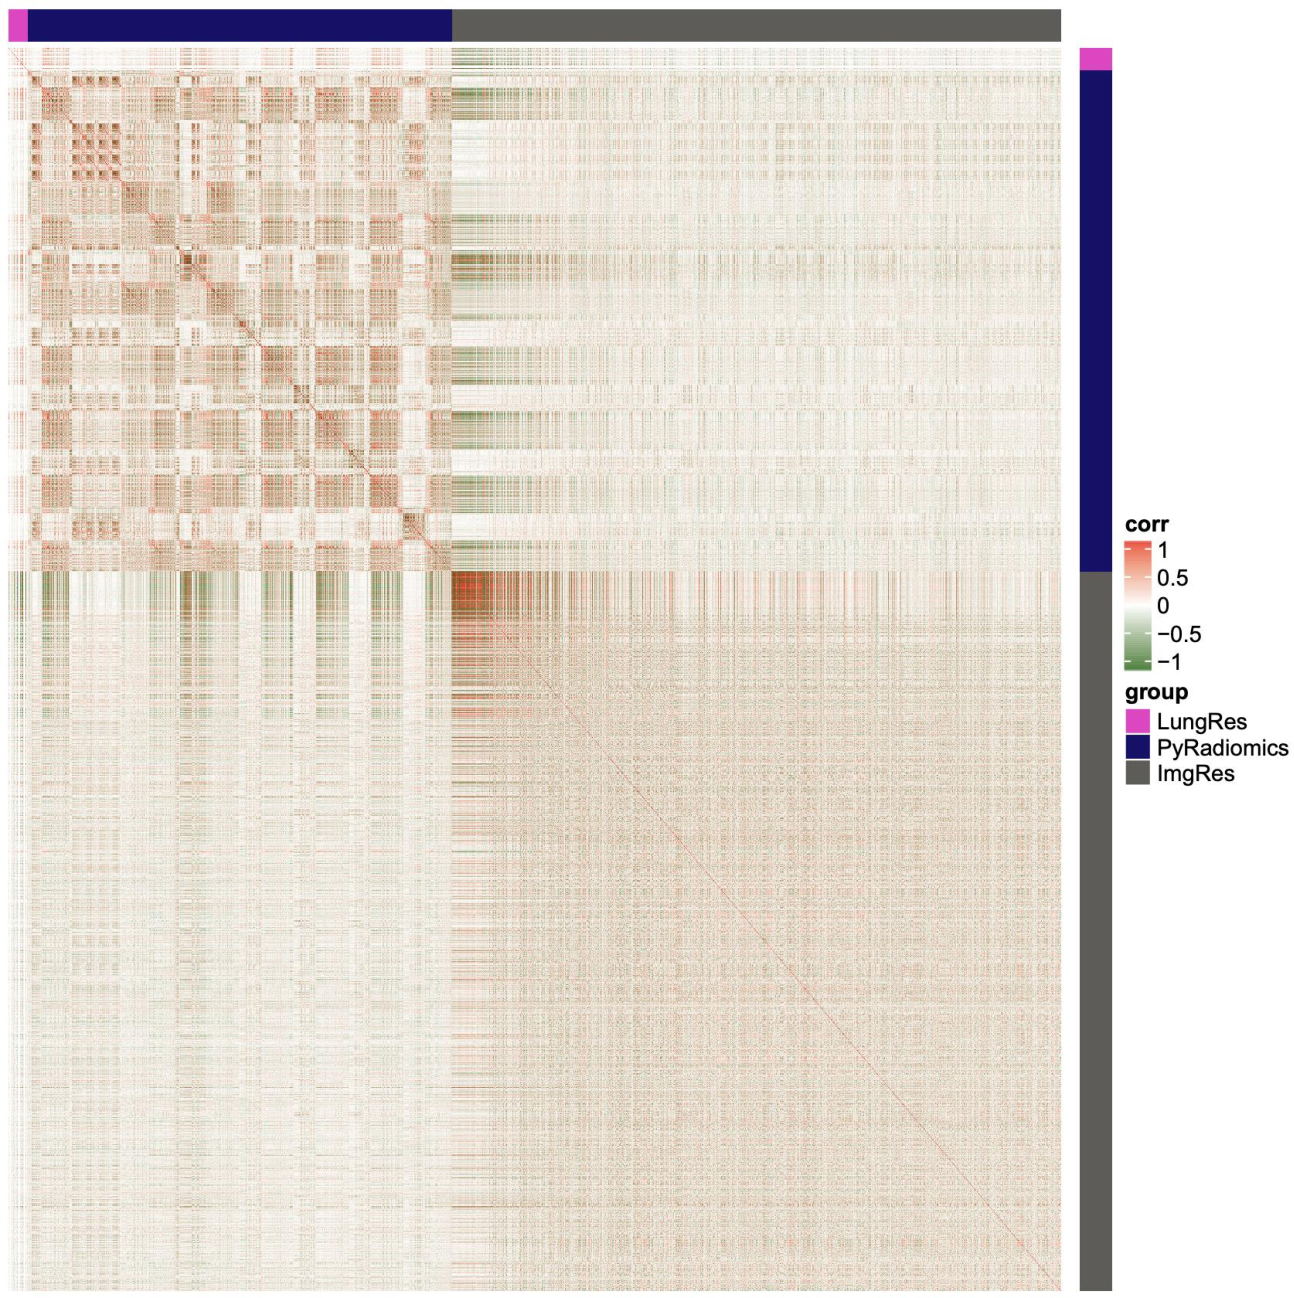 Figure 4 for Improving Prognostic Performance in Resectable Pancreatic Ductal Adenocarcinoma using Radiomics and Deep Learning Features Fusion in CT Images